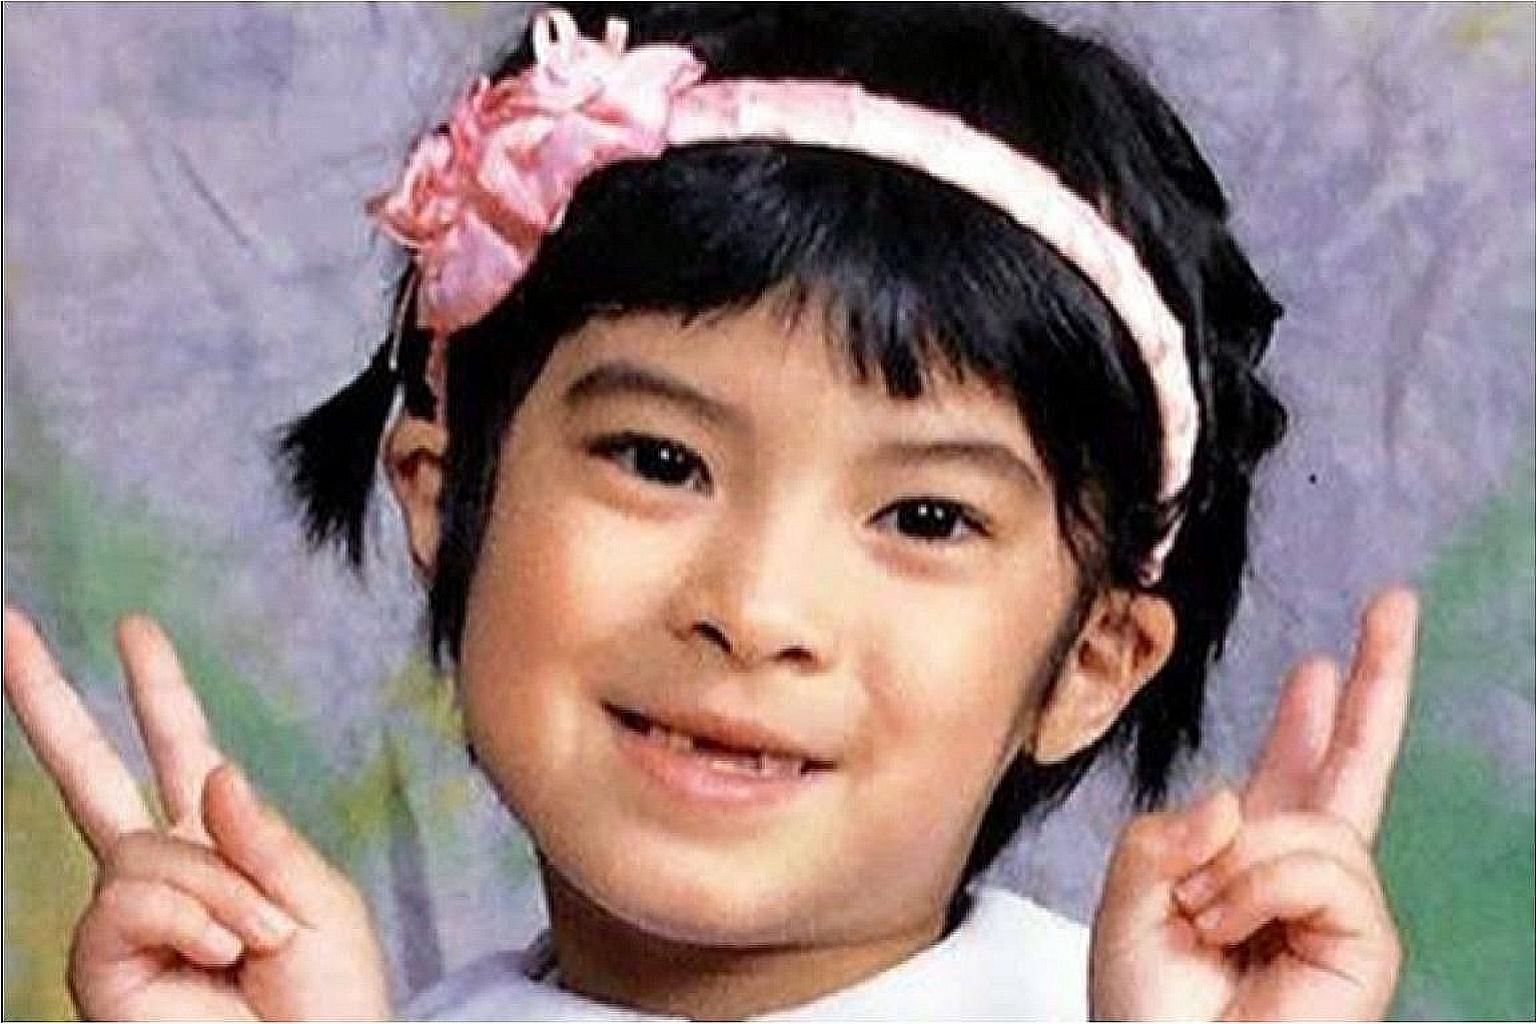 Mia, a fourth-grade pupil, was found dead in the bathroom of her family's home in Chiba prefecture on Jan 24 last year. She had told her teachers she was being abused.